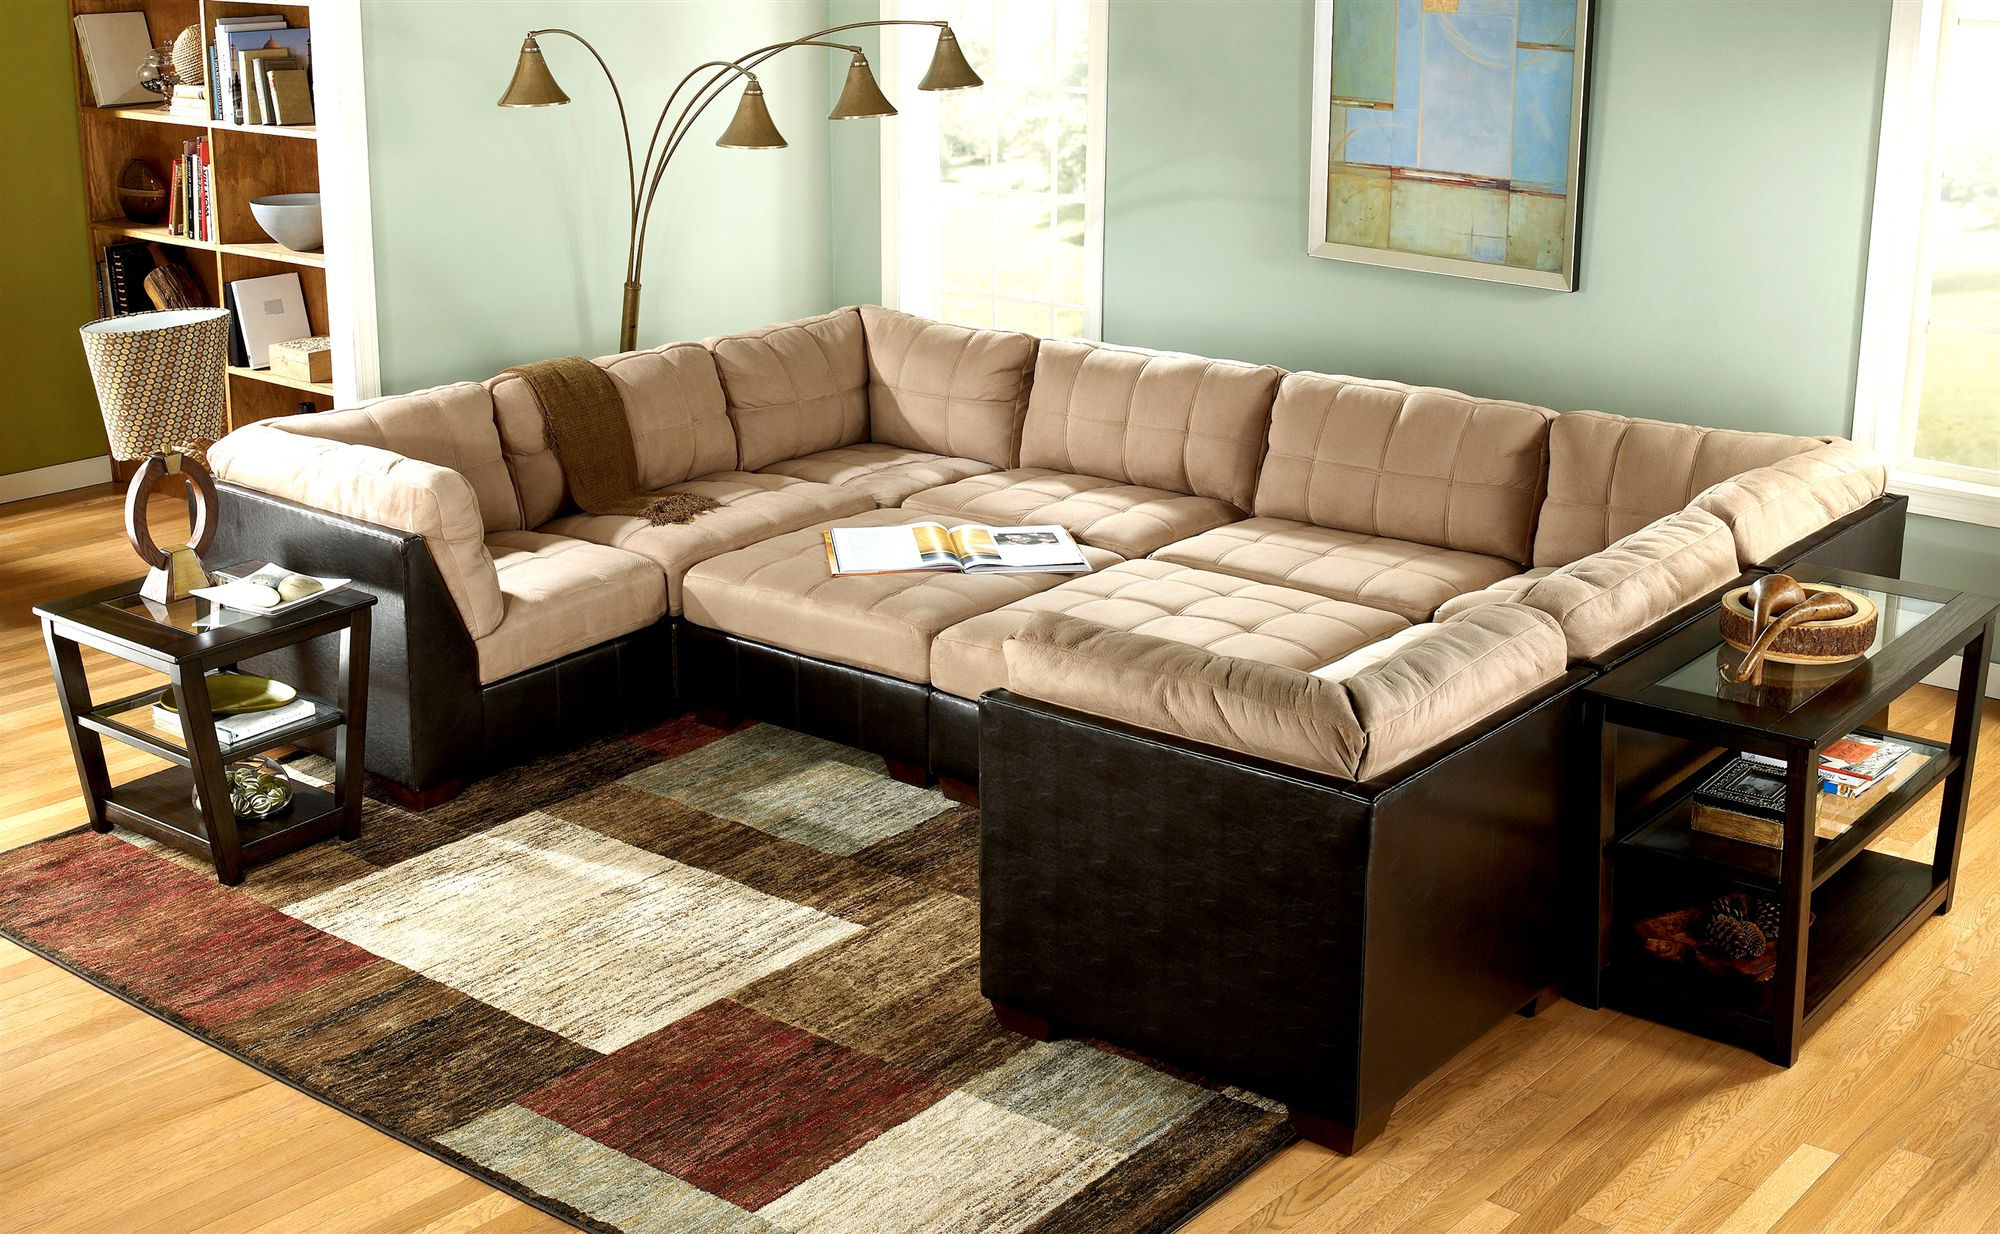 Living room ideas with sectionals sofa for small living for Sectional living room ideas